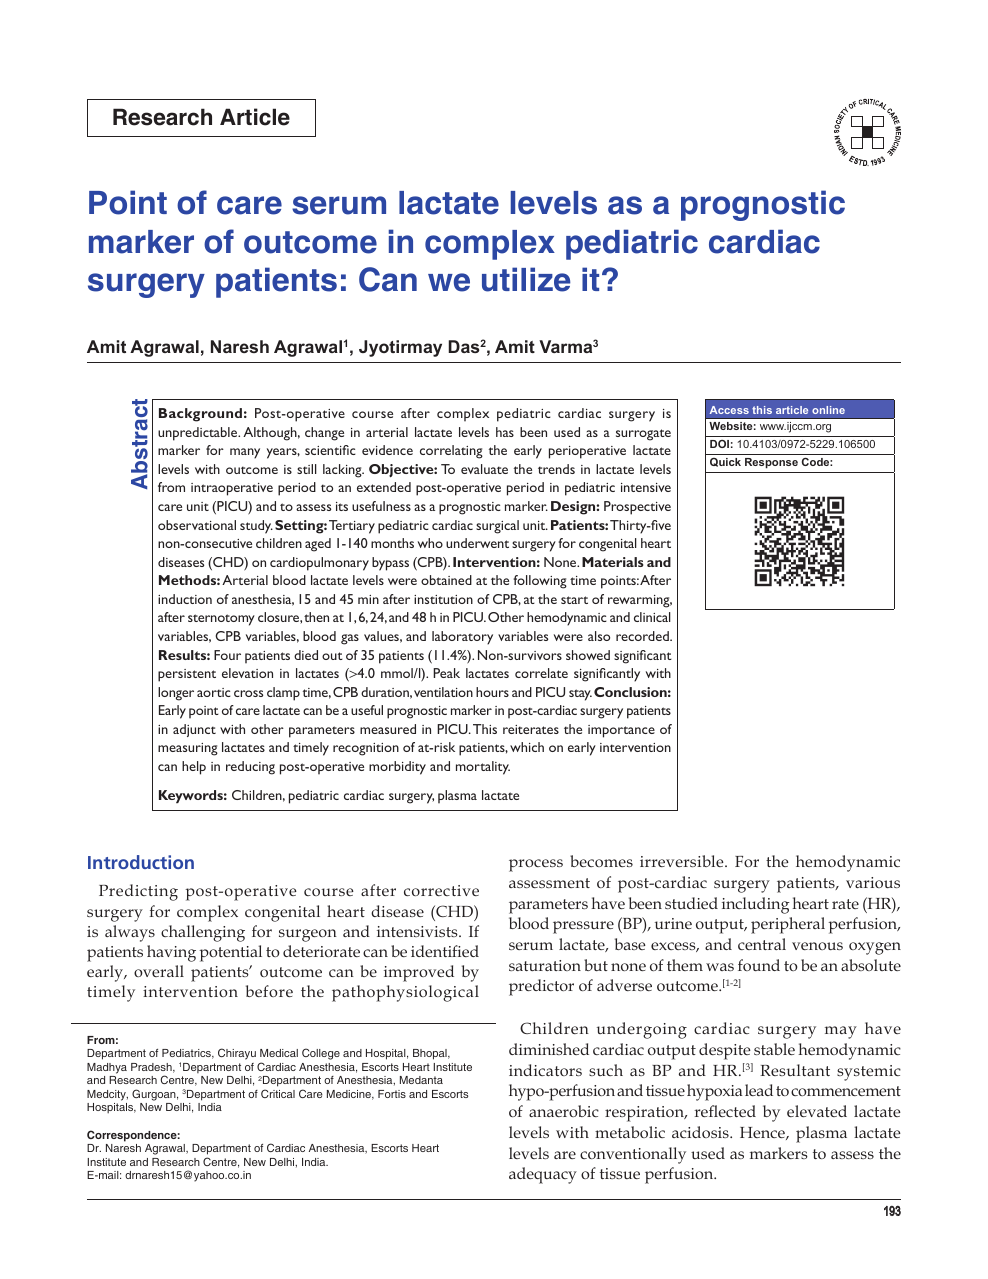 Point Of Care Serum Lactate Levels As A Prognostic Marker Of Outcome In Complex Pediatric Cardiac Surgery Patients Can We Utilize It Topic Of Research Paper In Clinical Medicine Download Scholarly